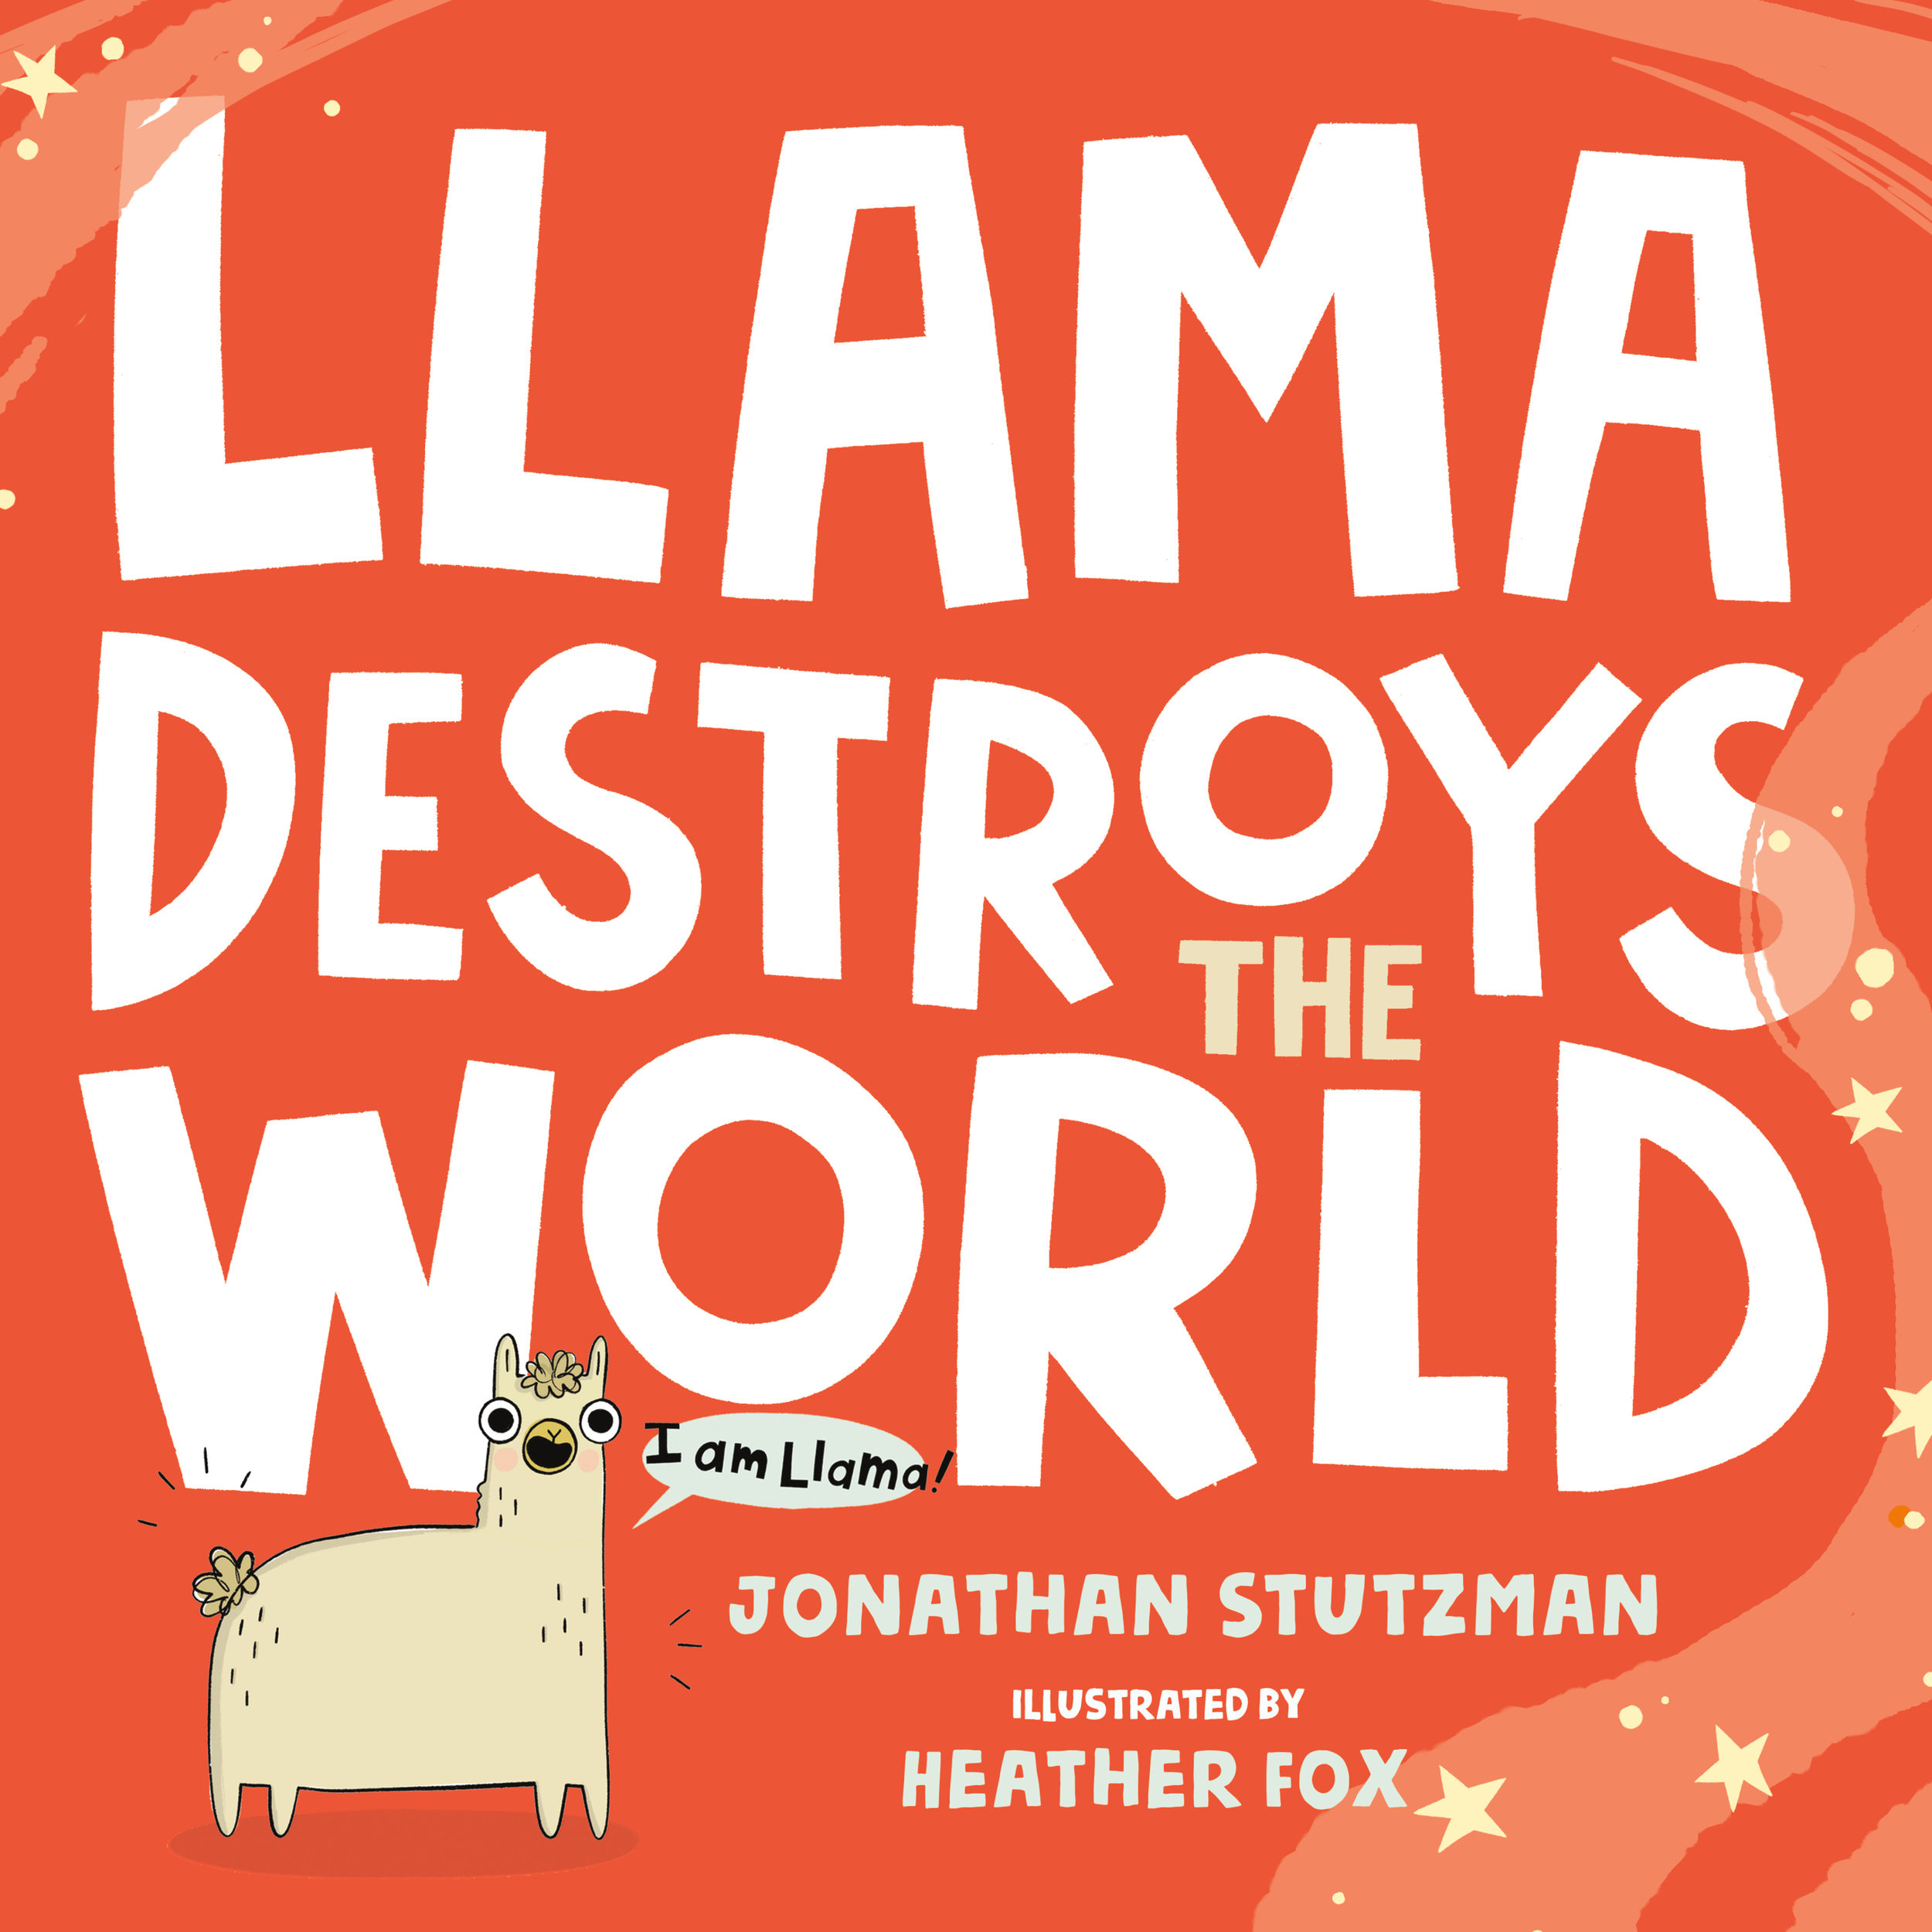 Llama Destroys the World.jpg